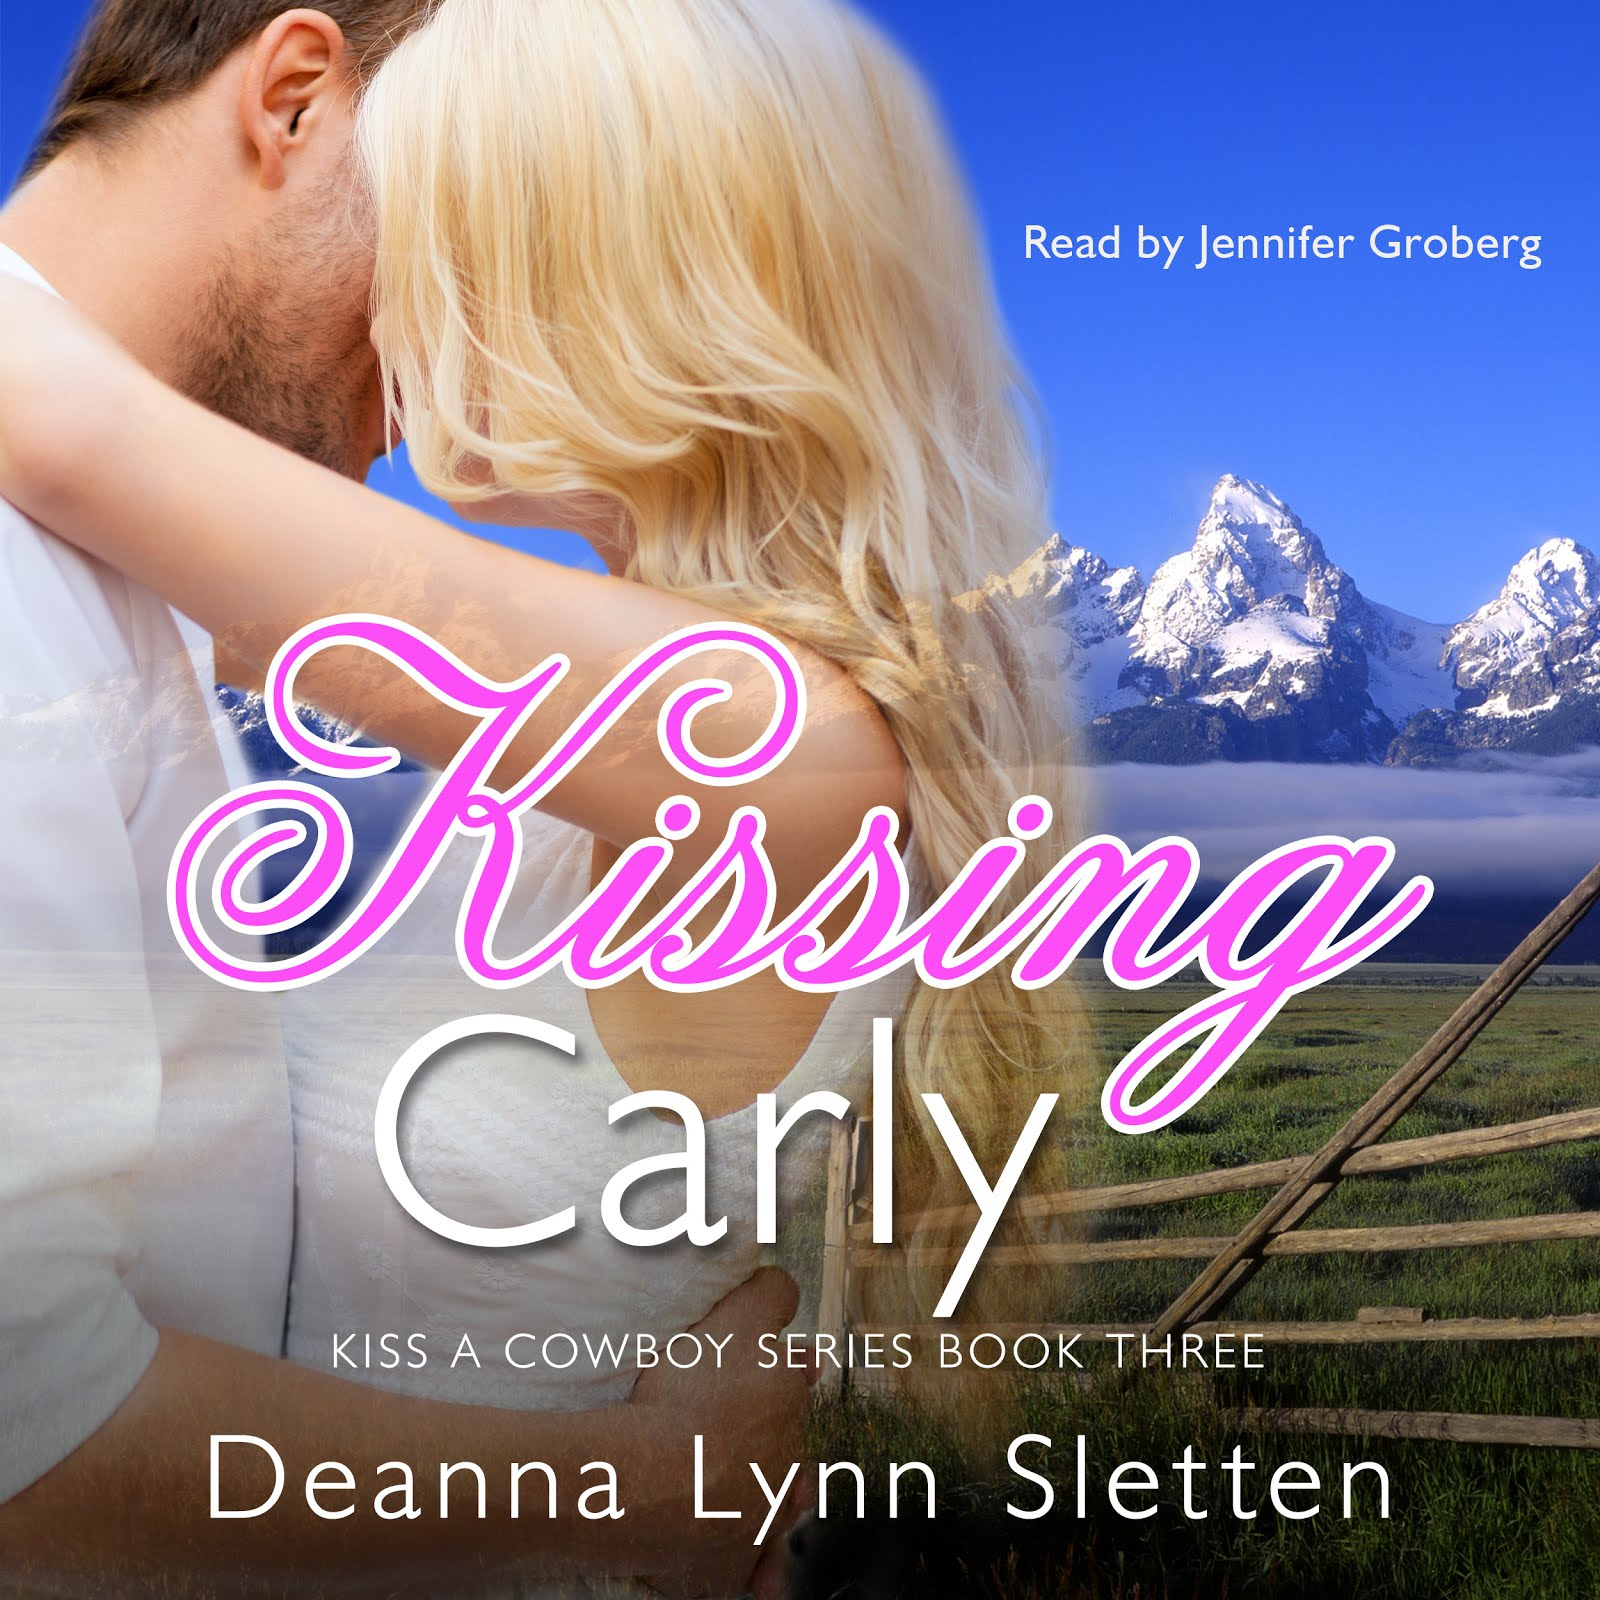 Kissing Carly ~ Audiobook